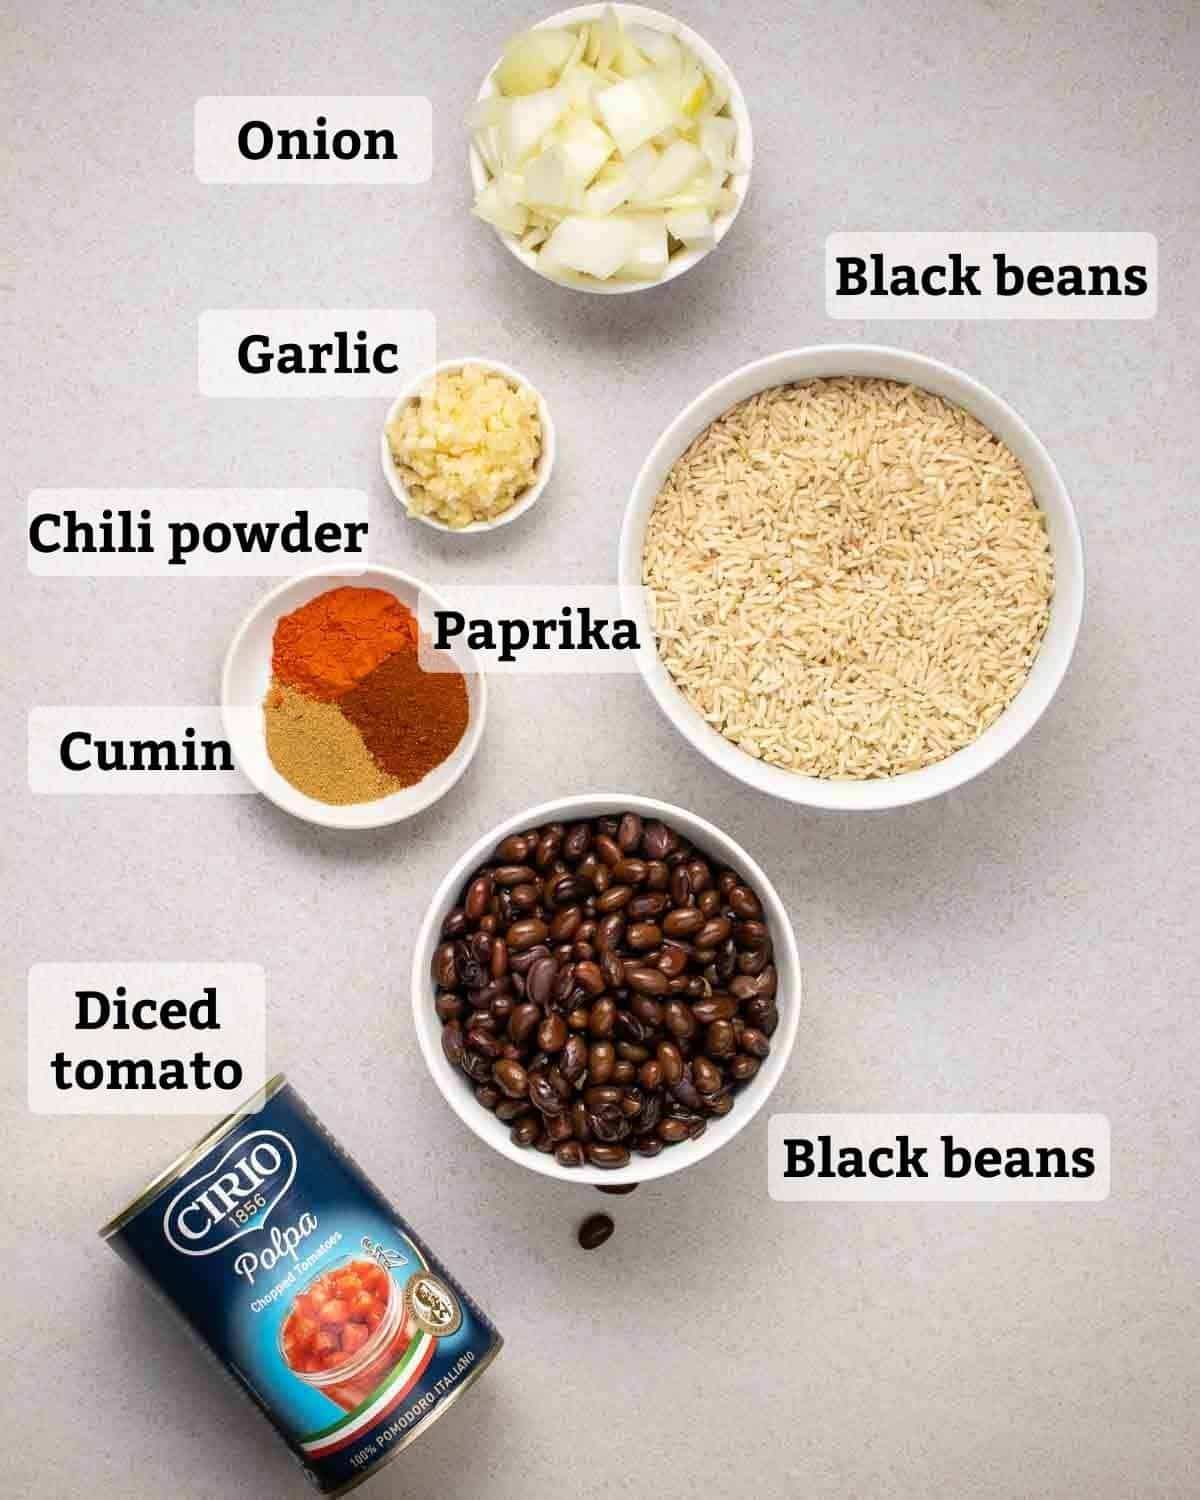 Ingredients needed like rice, beans, diced tomatoes, garlic, onion and spices.